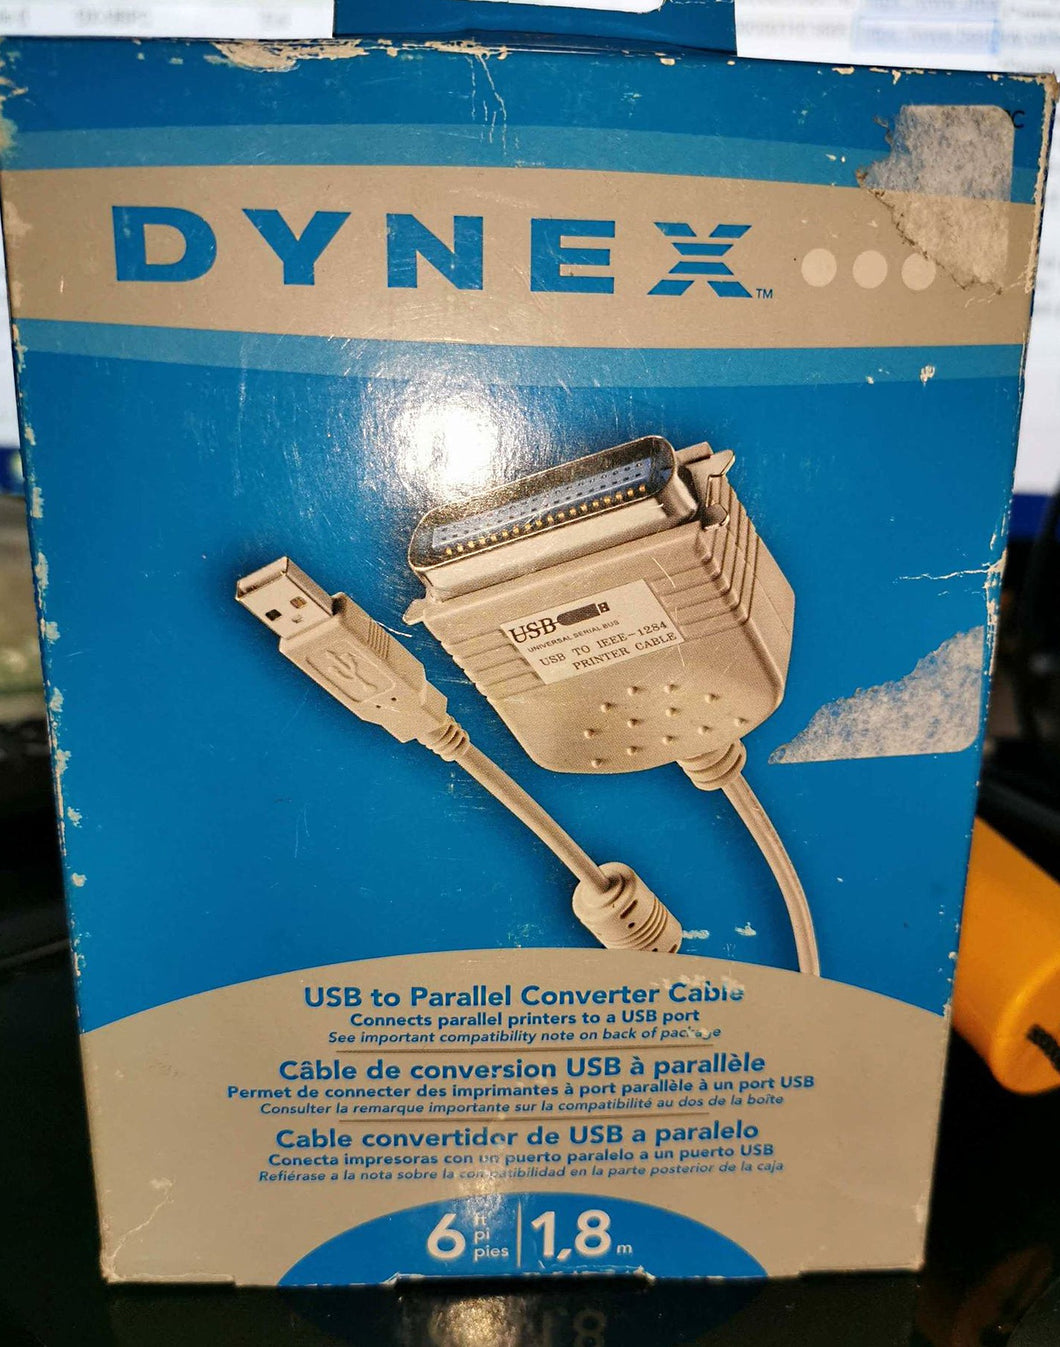 6' DYNEX USB to Parallel Converter Cable (DX-UBPC)